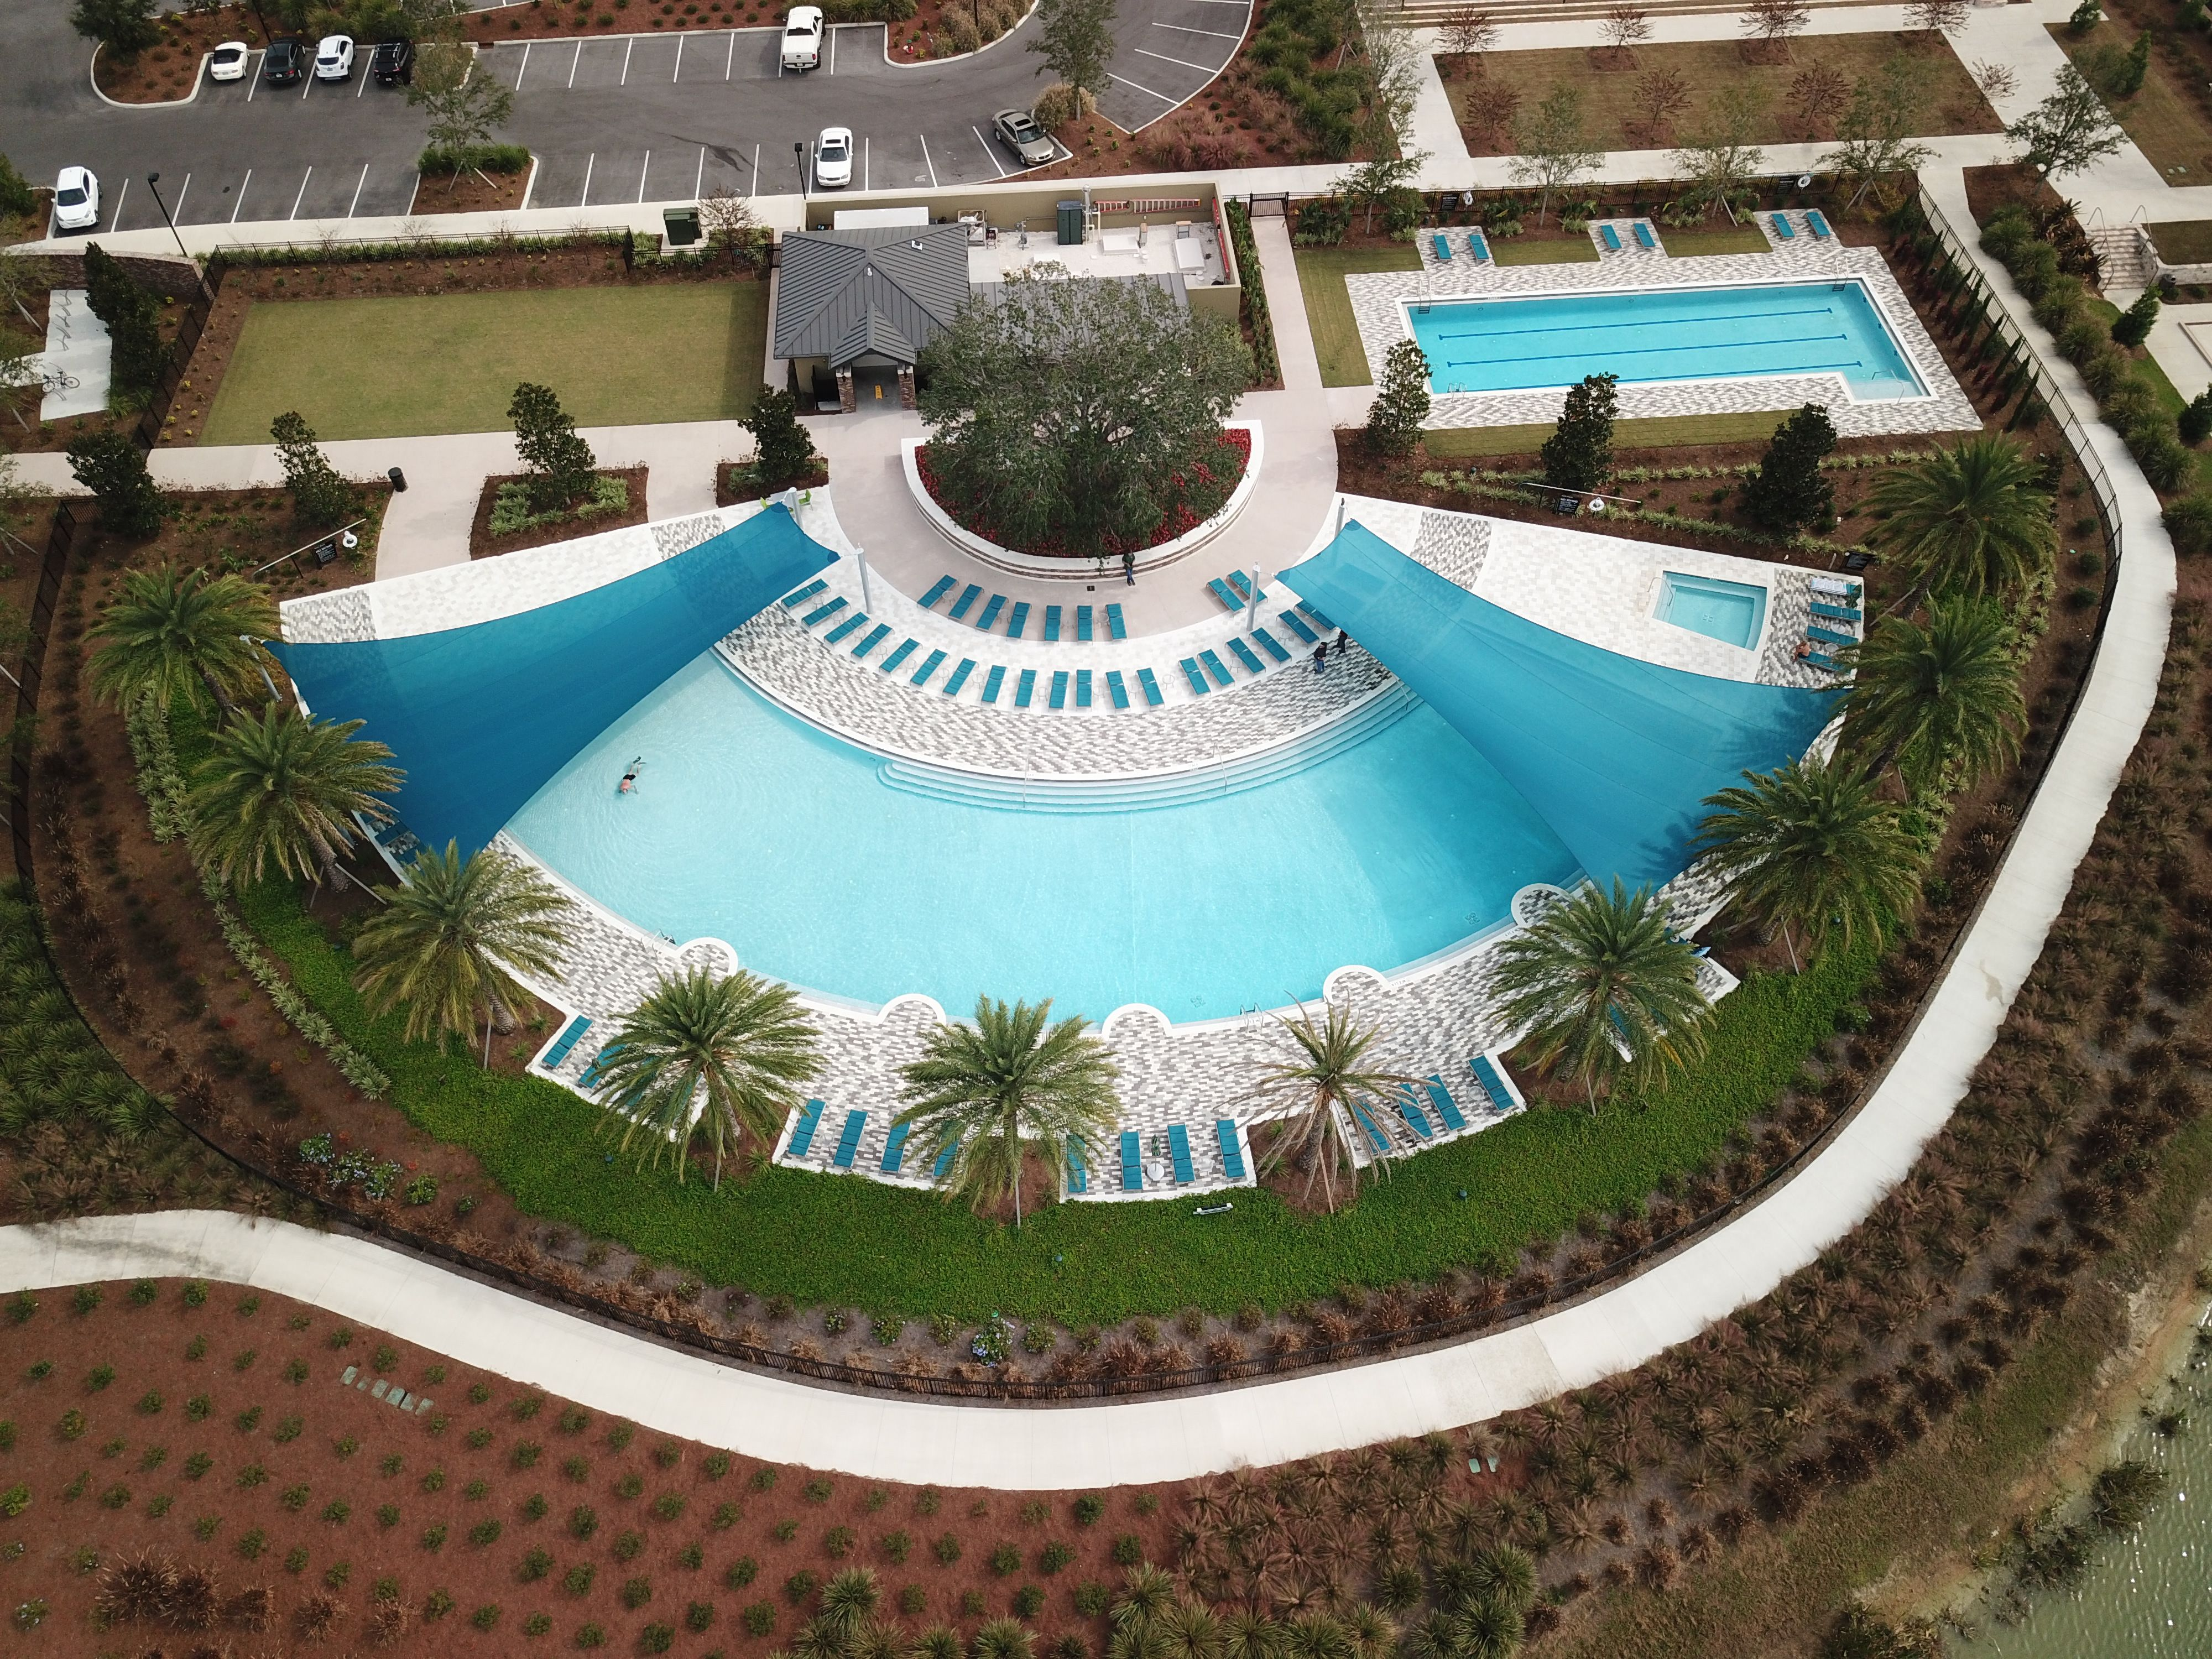 Leisure Pool Spa And Fitness Pool Swimming Pool Builder Cool Swimming Pools Swimming Pools Inground